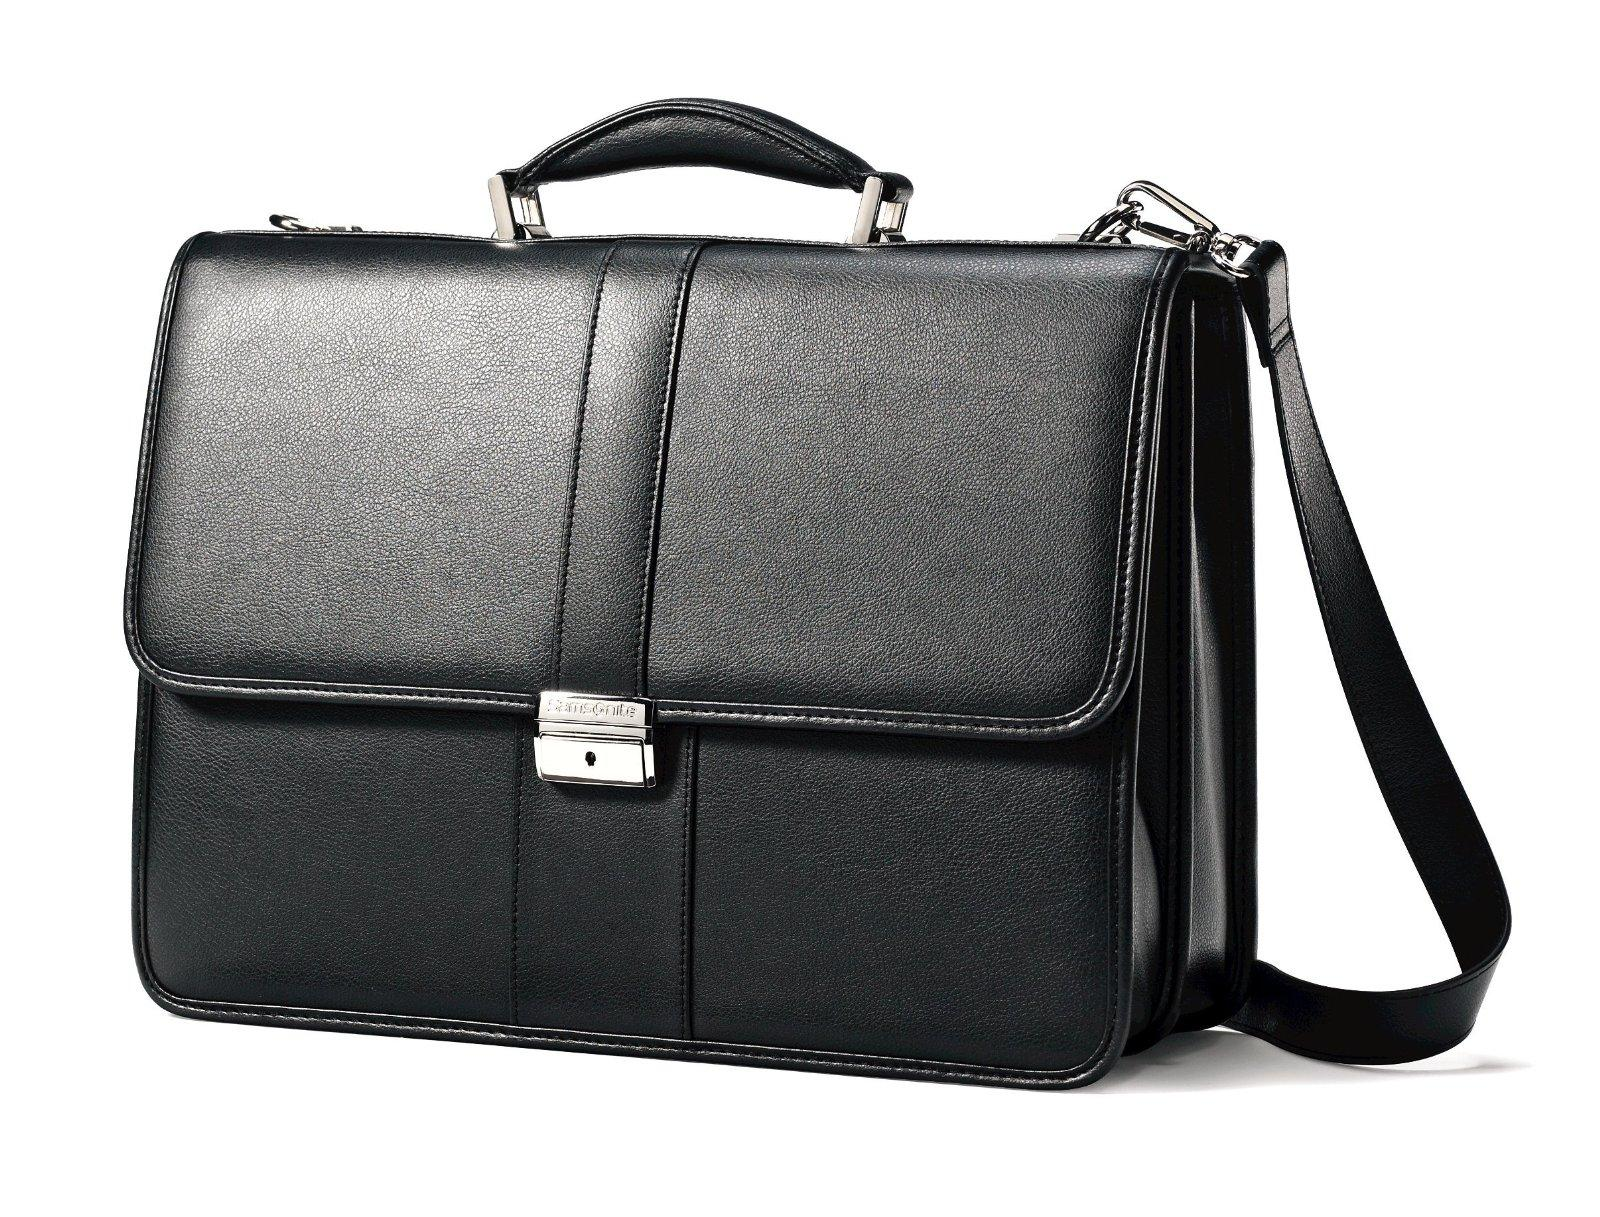 AsEstilo Store: MEN's LEATHER BAGS AND BRIEFCASES